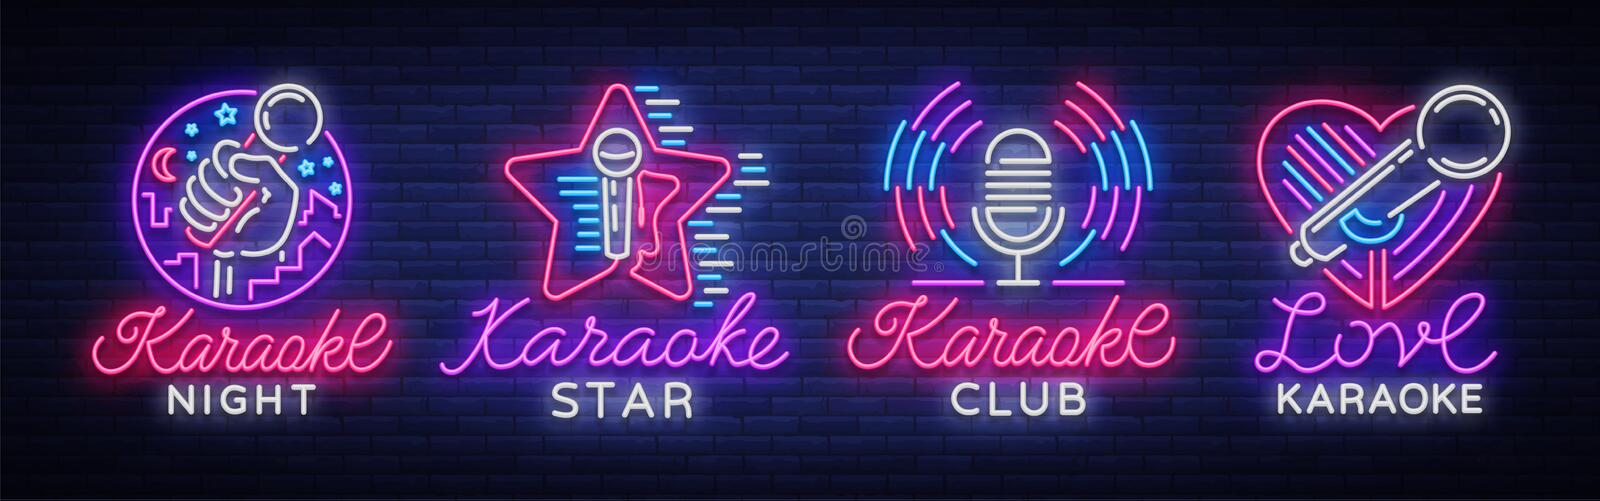 Karaoke set of neon signs. Collection is a light logo, a symbol, a light banner. Advertising bright night karaoke bar stock illustration